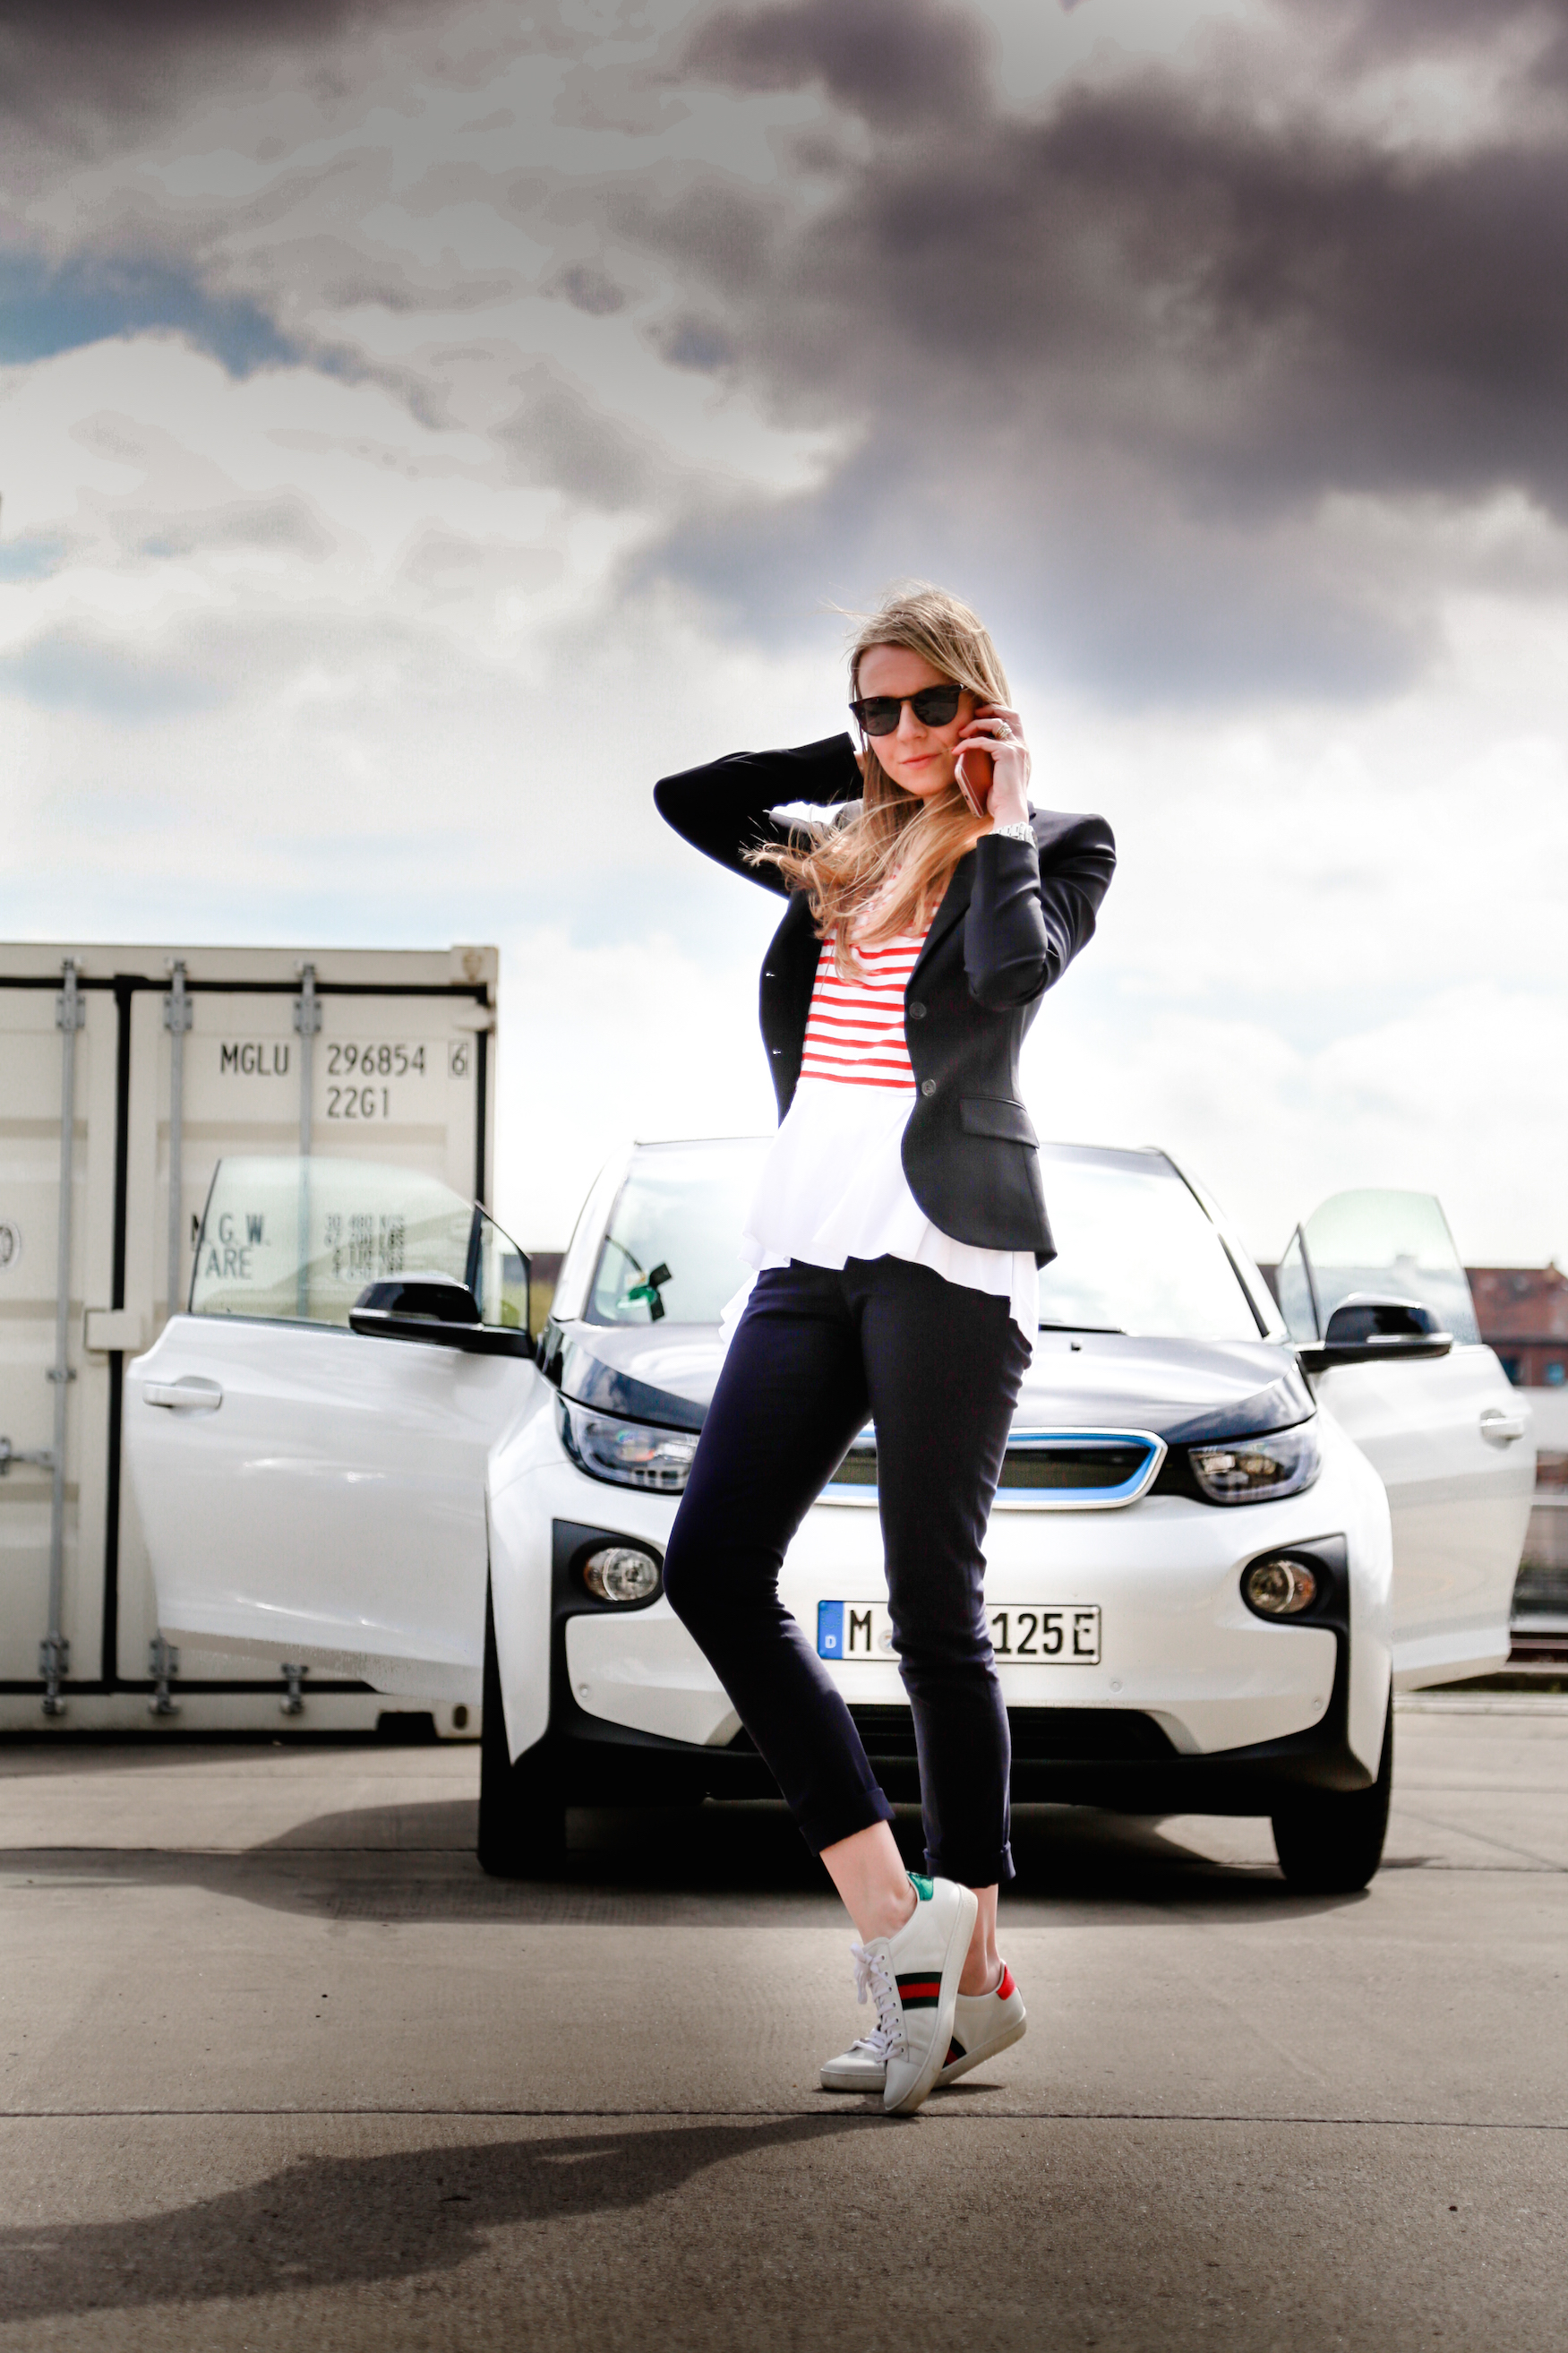 10 Facts About me - Teil 2 Fakten Jennifer Persönlich Persönliches 10Fakten 10FaktenÜberMich 10FactsAboutMe Personal Bodensee i3 BMW BMWi